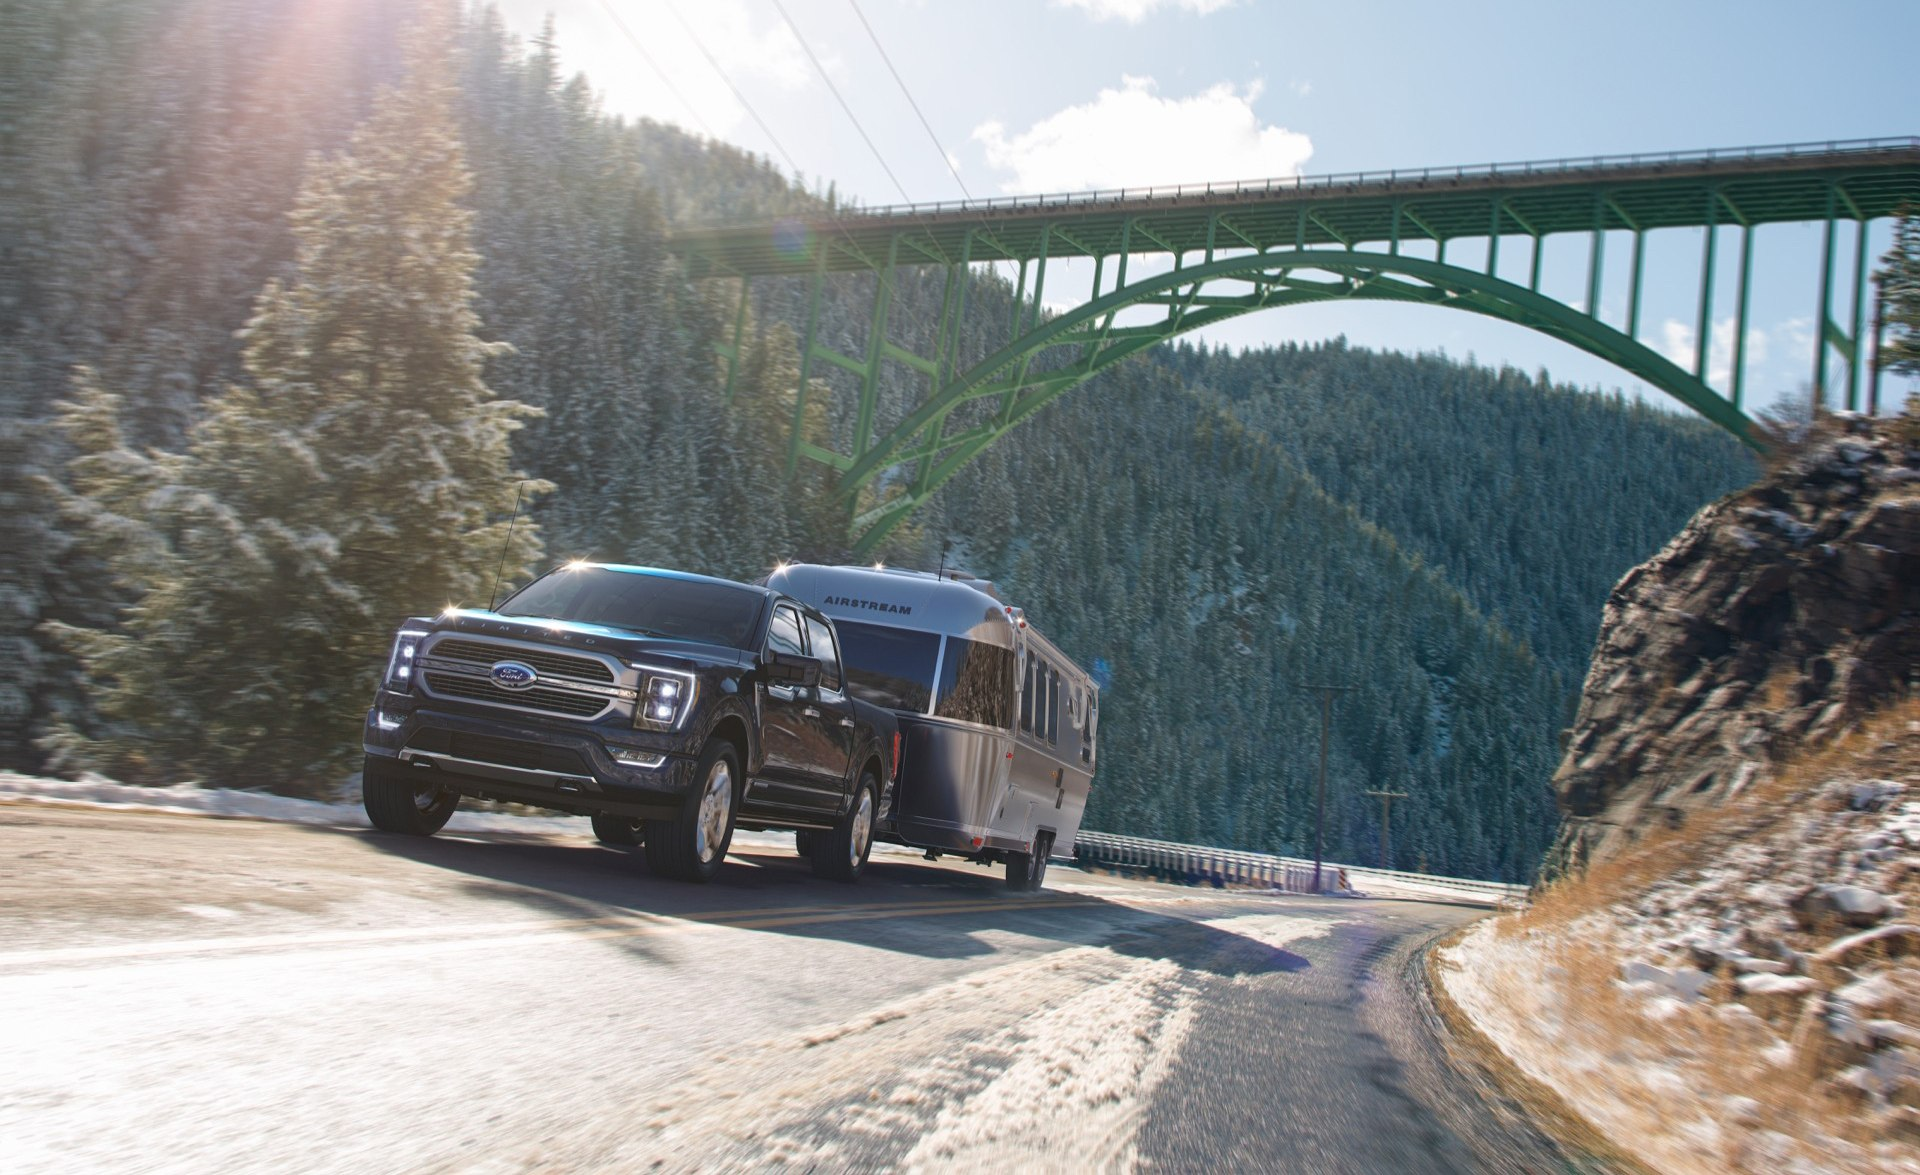 Best Tires For F150 >> The 5 Coolest New Features on the 2021 Ford F-150 » AutoGuide.com News